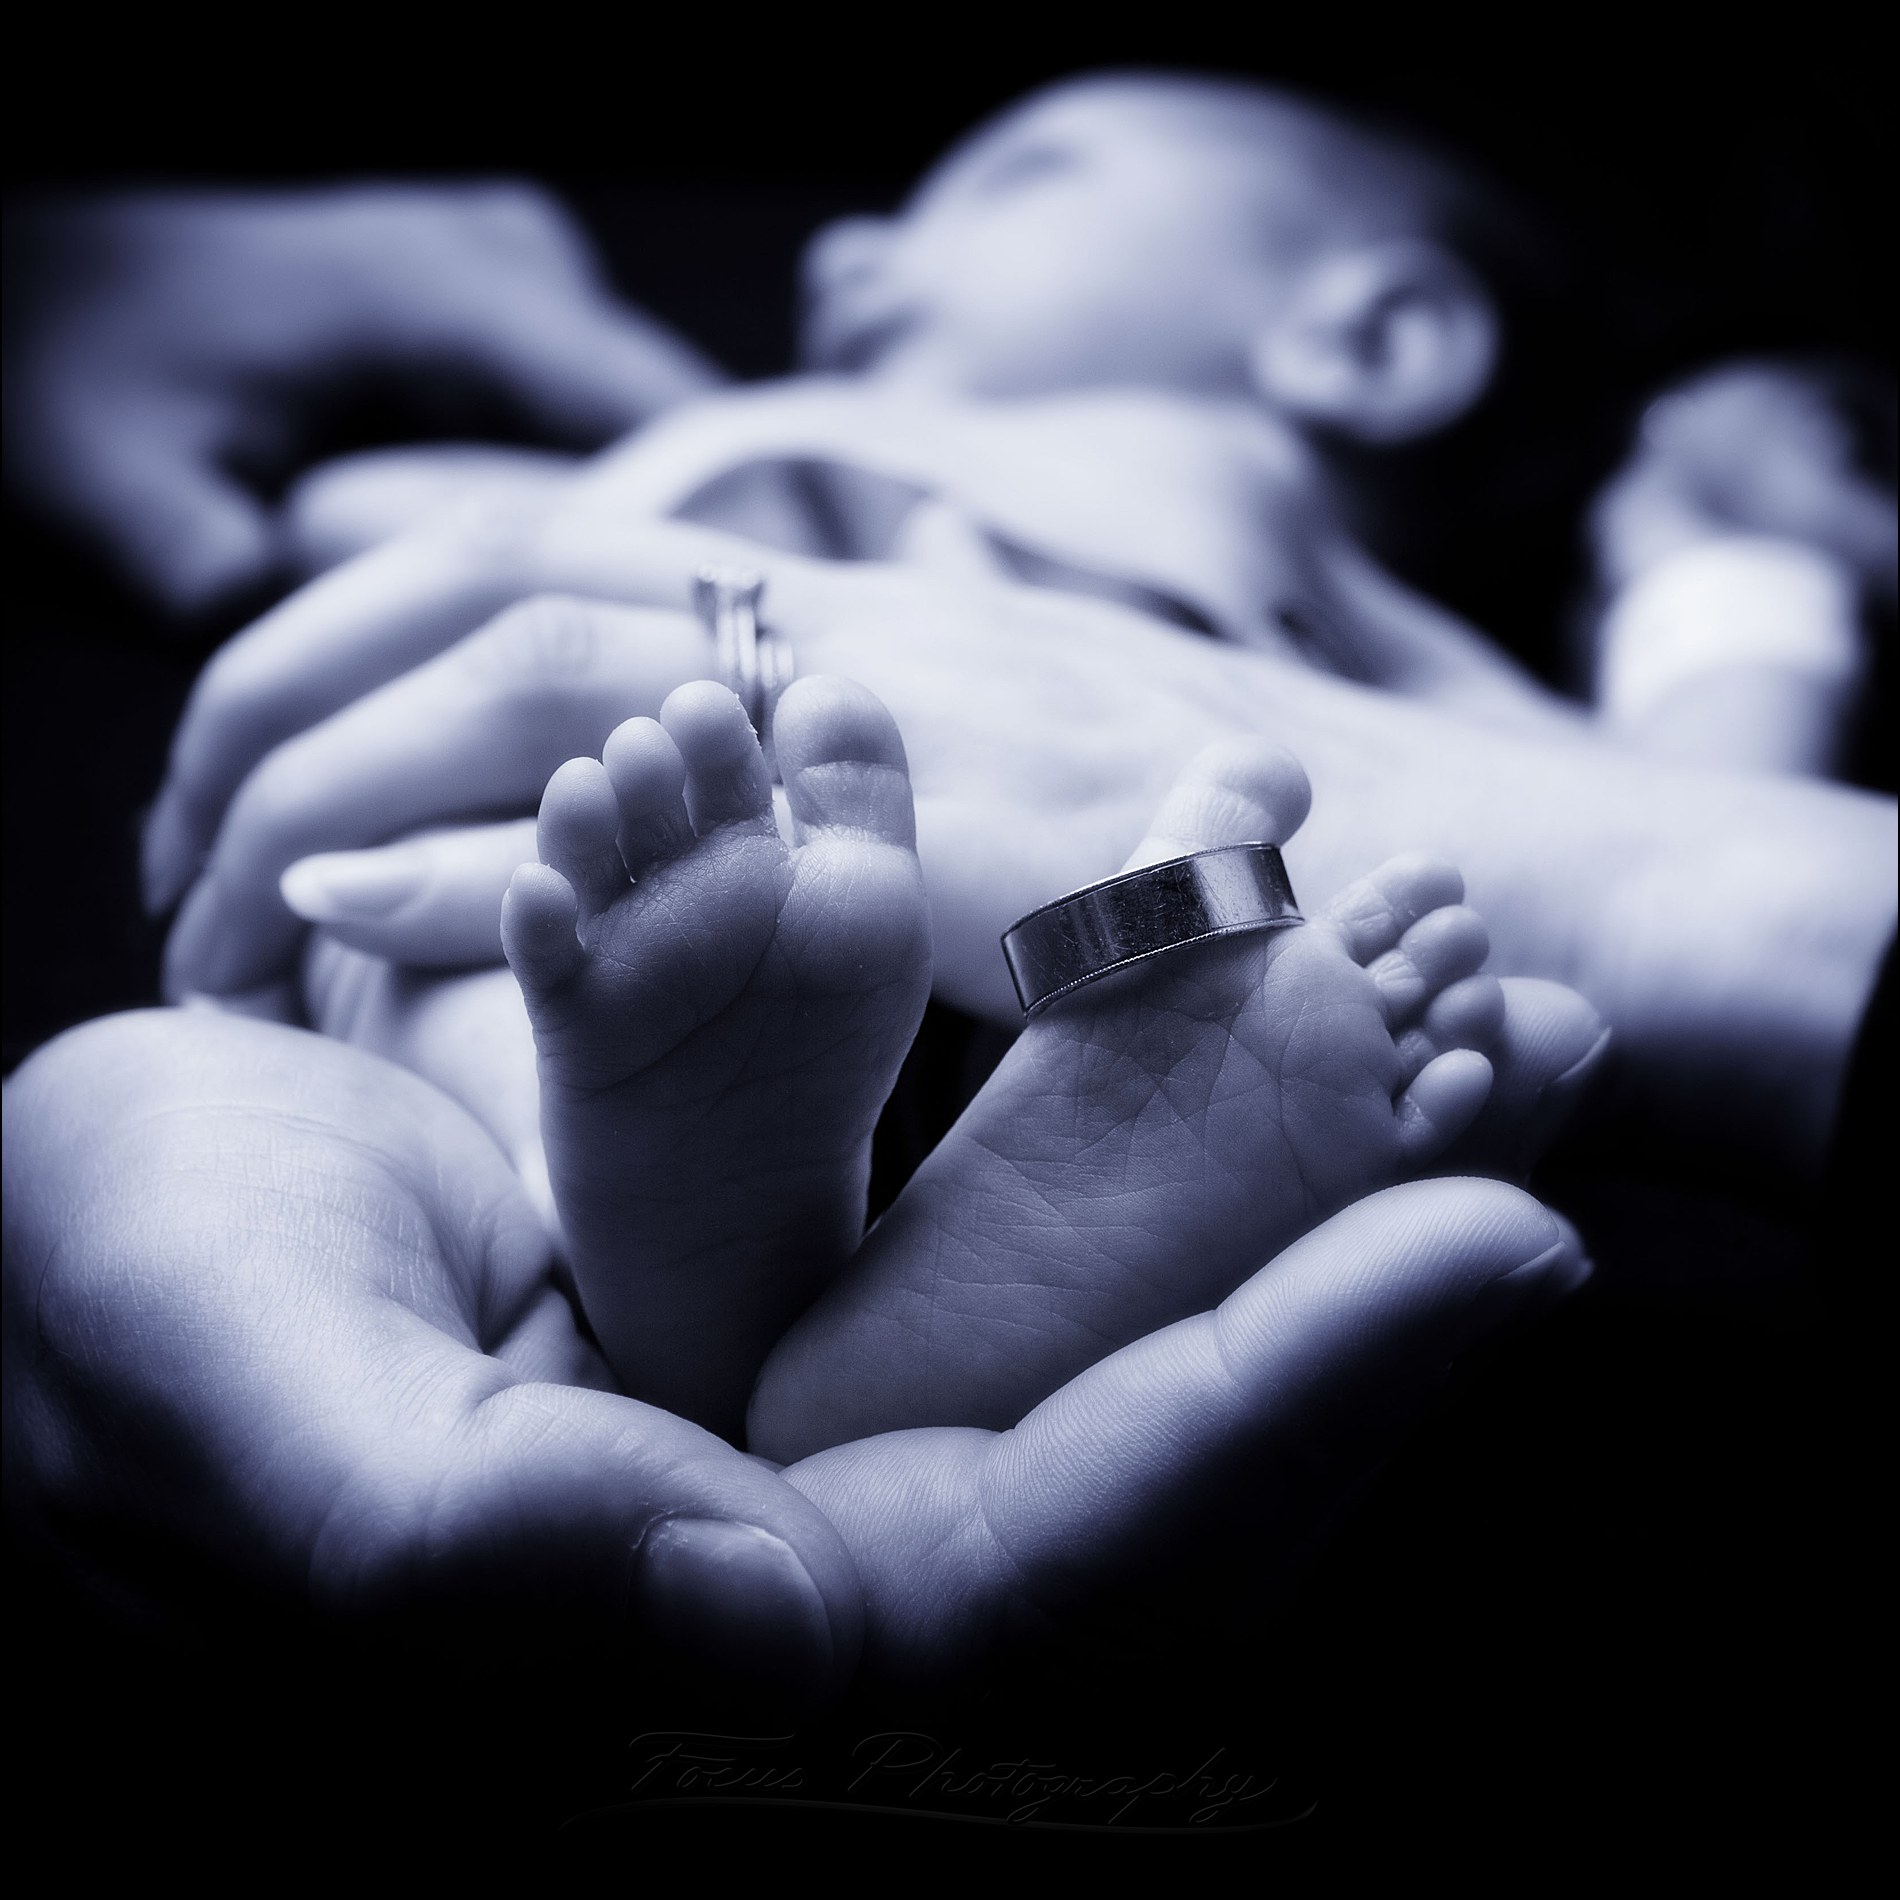 wedding ring on baby's feet in blue-toned image